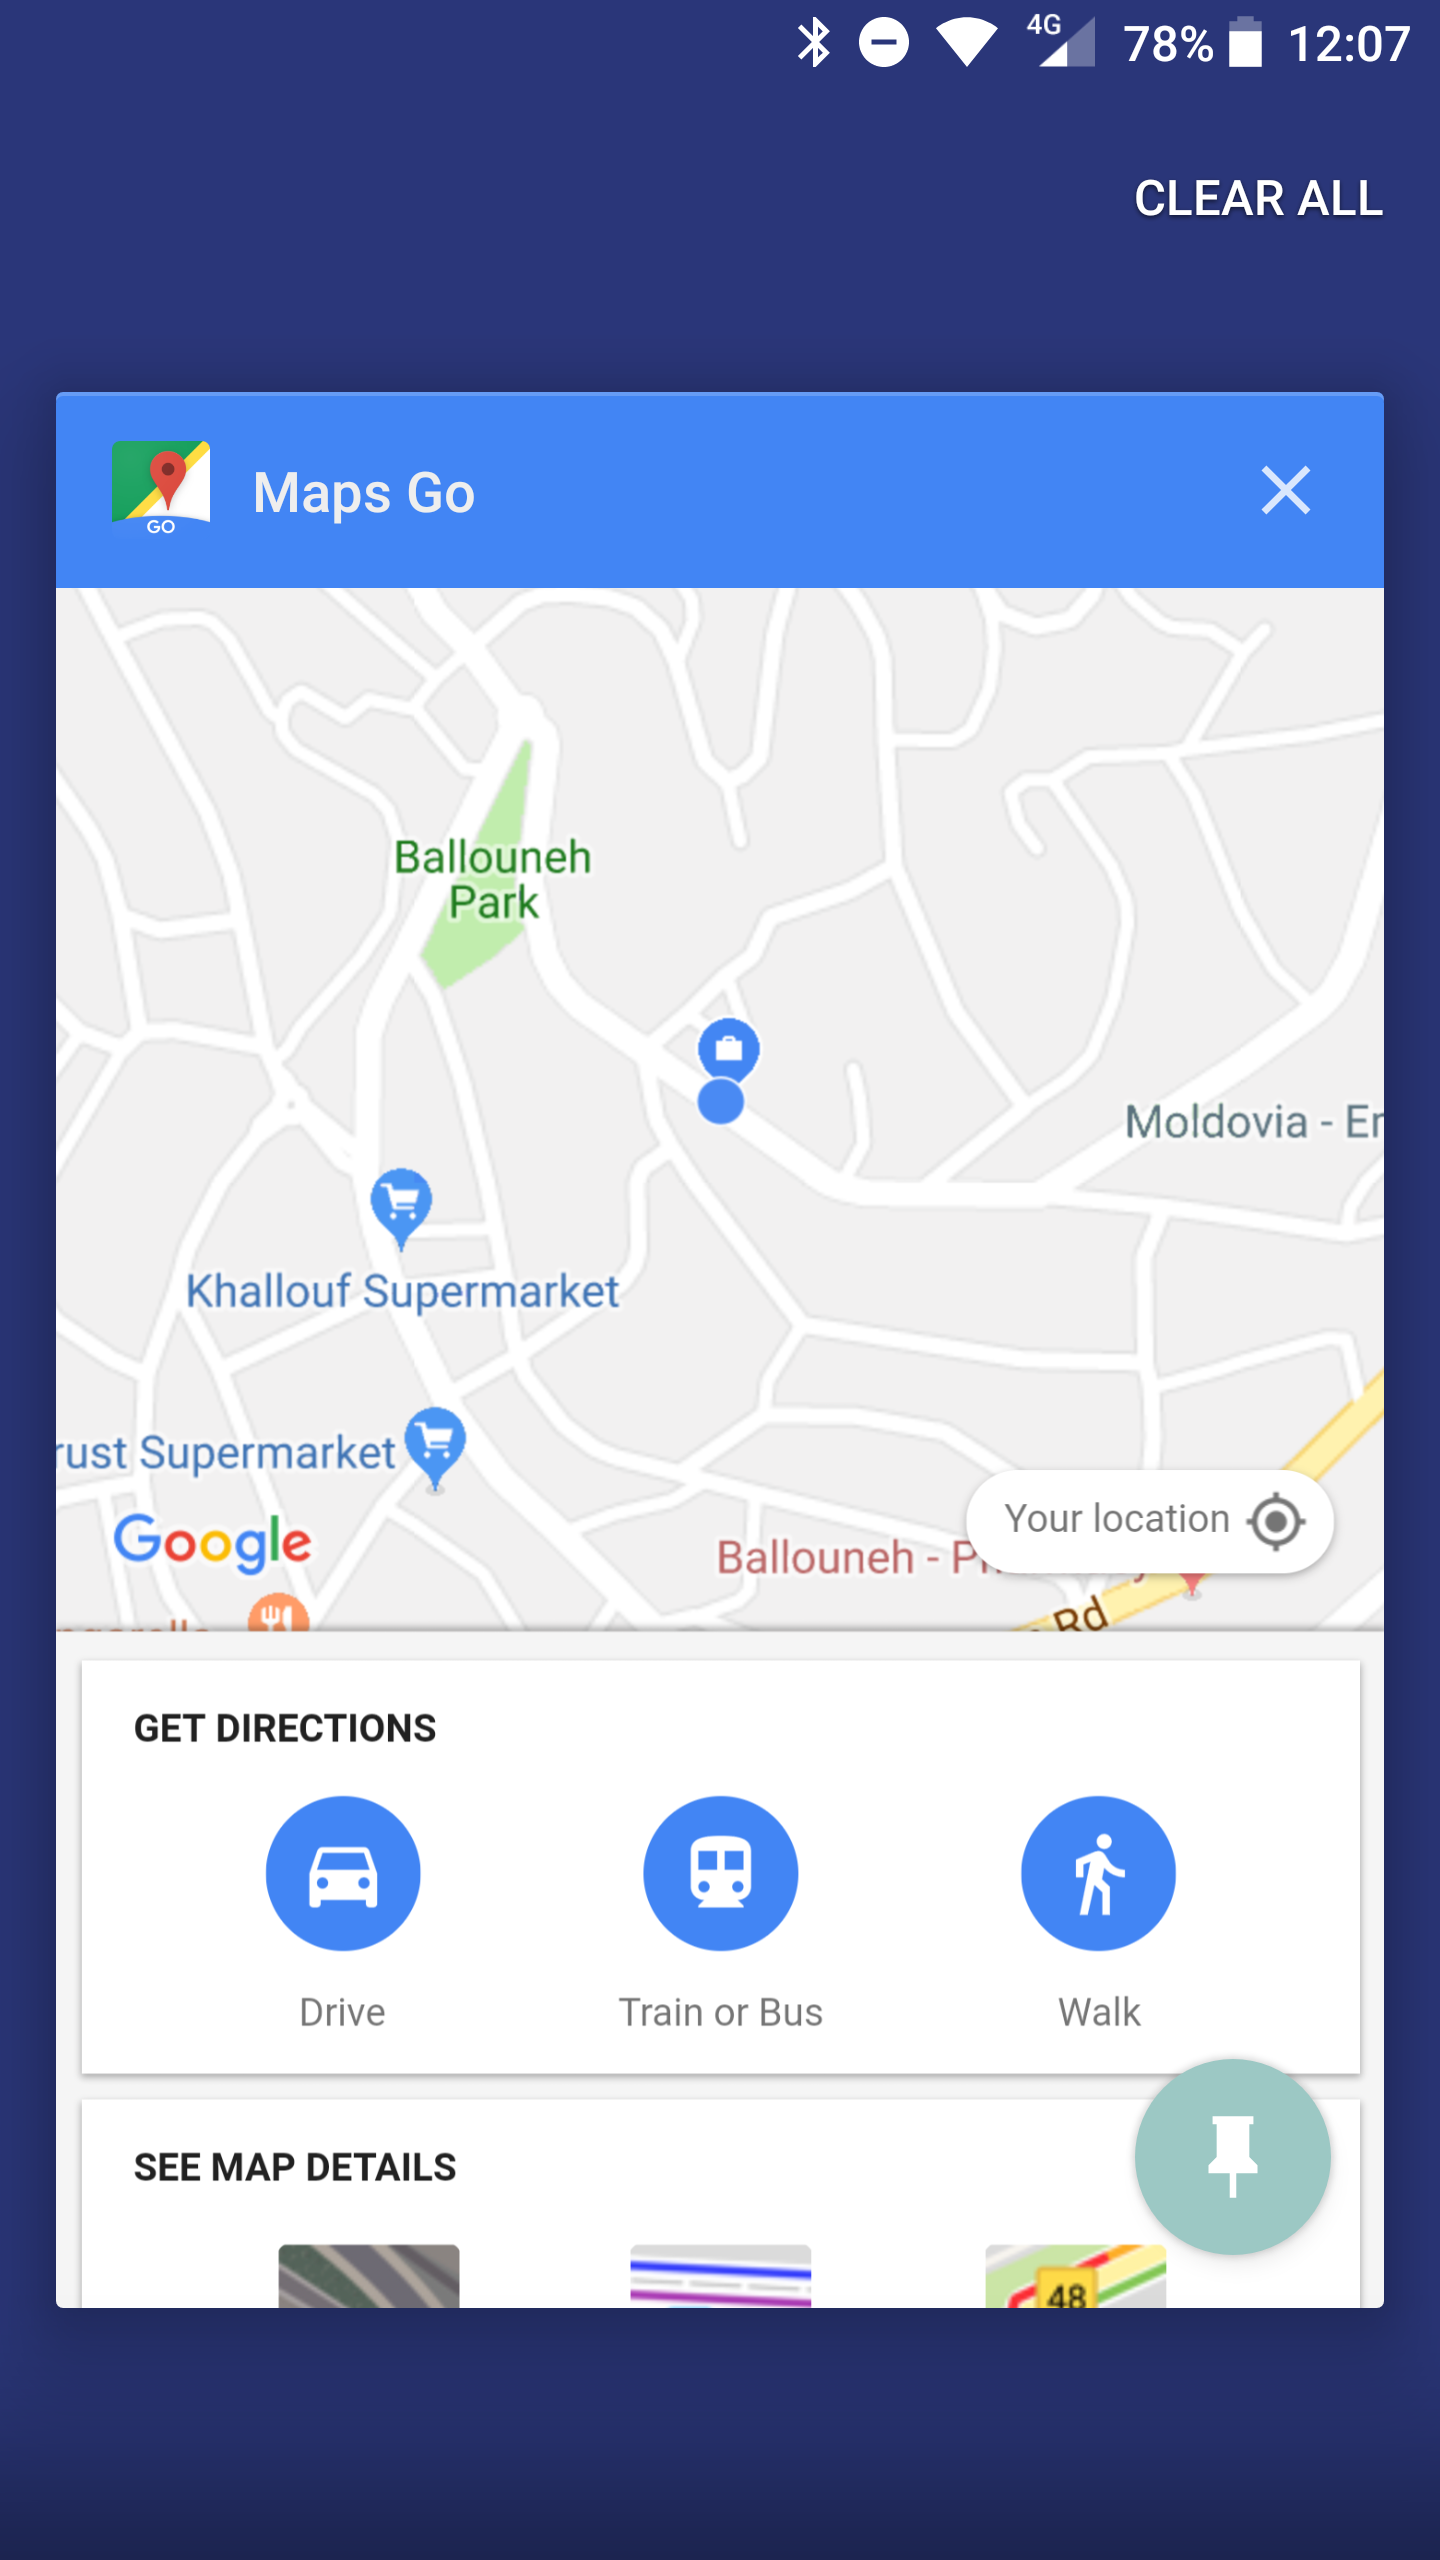 update apk download google maps go shows up on the play store  - next